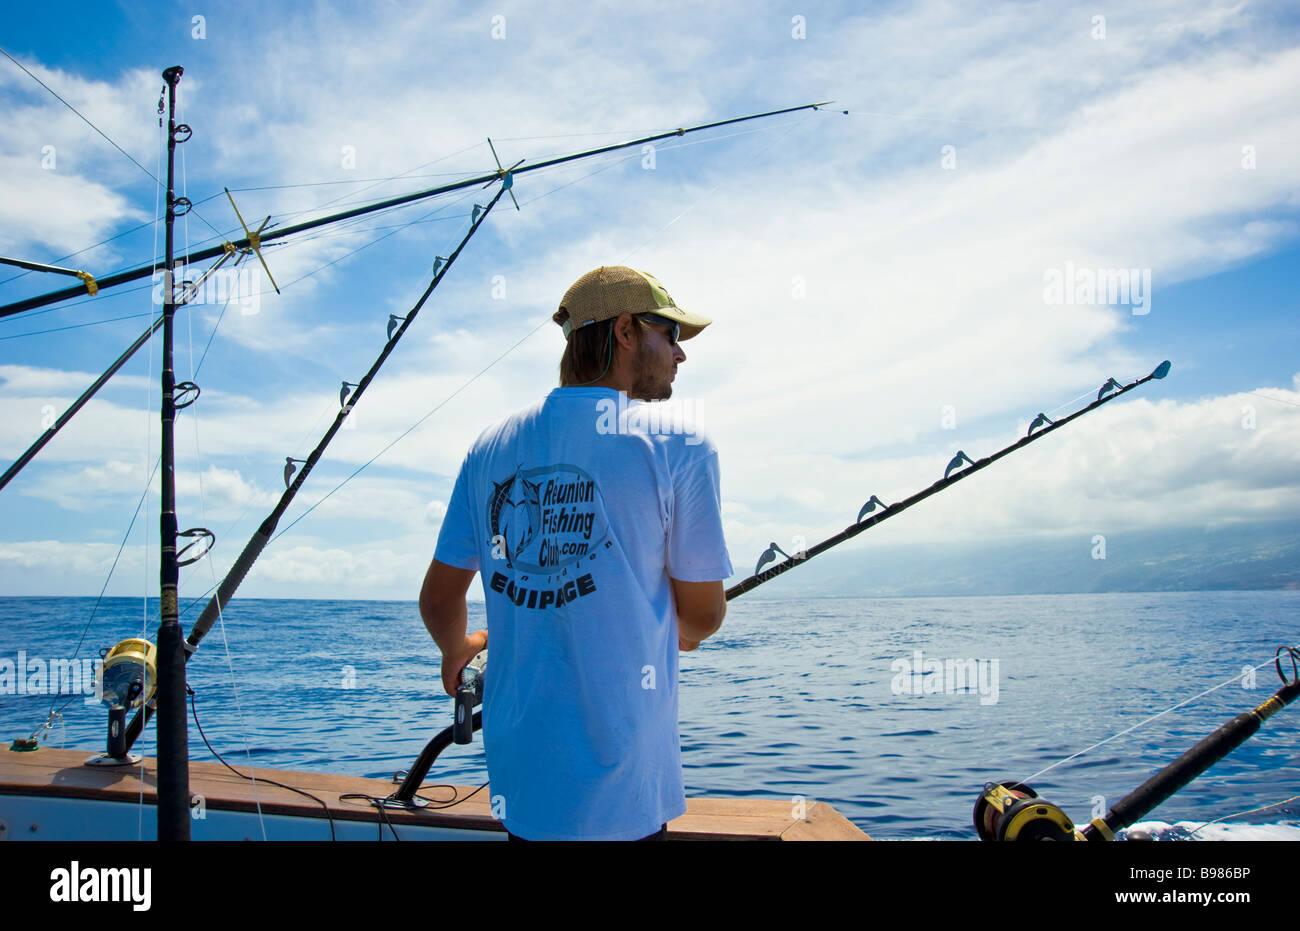 Big game fishing fisherman on fishing boat Saint Gilles La Réunion France | Hochseeangeln, Angler auf Fischerboot - Stock Image